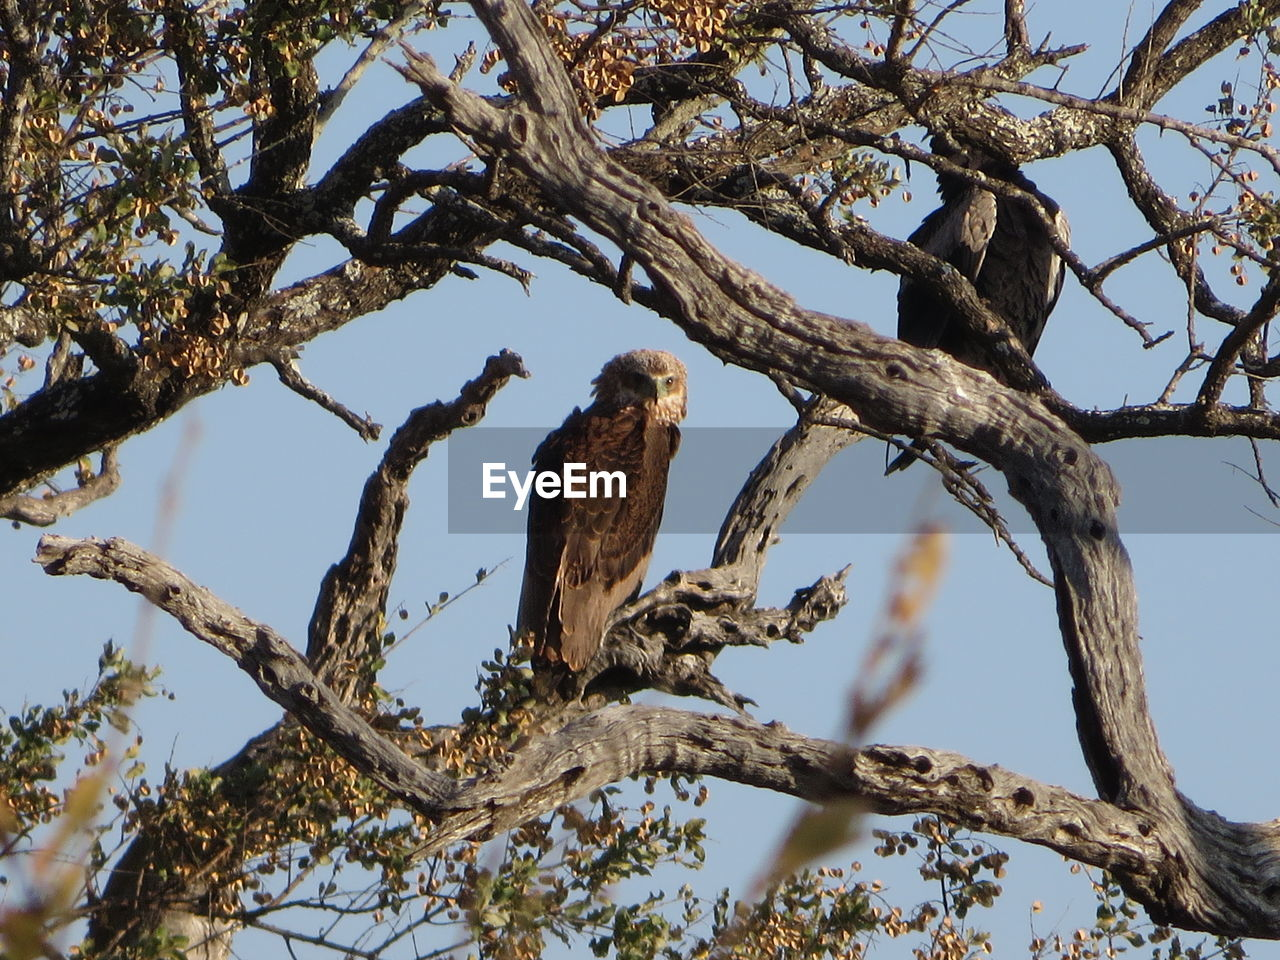 branch, tree, animal wildlife, animals in the wild, animal themes, animal, low angle view, vertebrate, plant, perching, bird, one animal, nature, no people, sky, day, outdoors, bird of prey, bare tree, clear sky, eagle